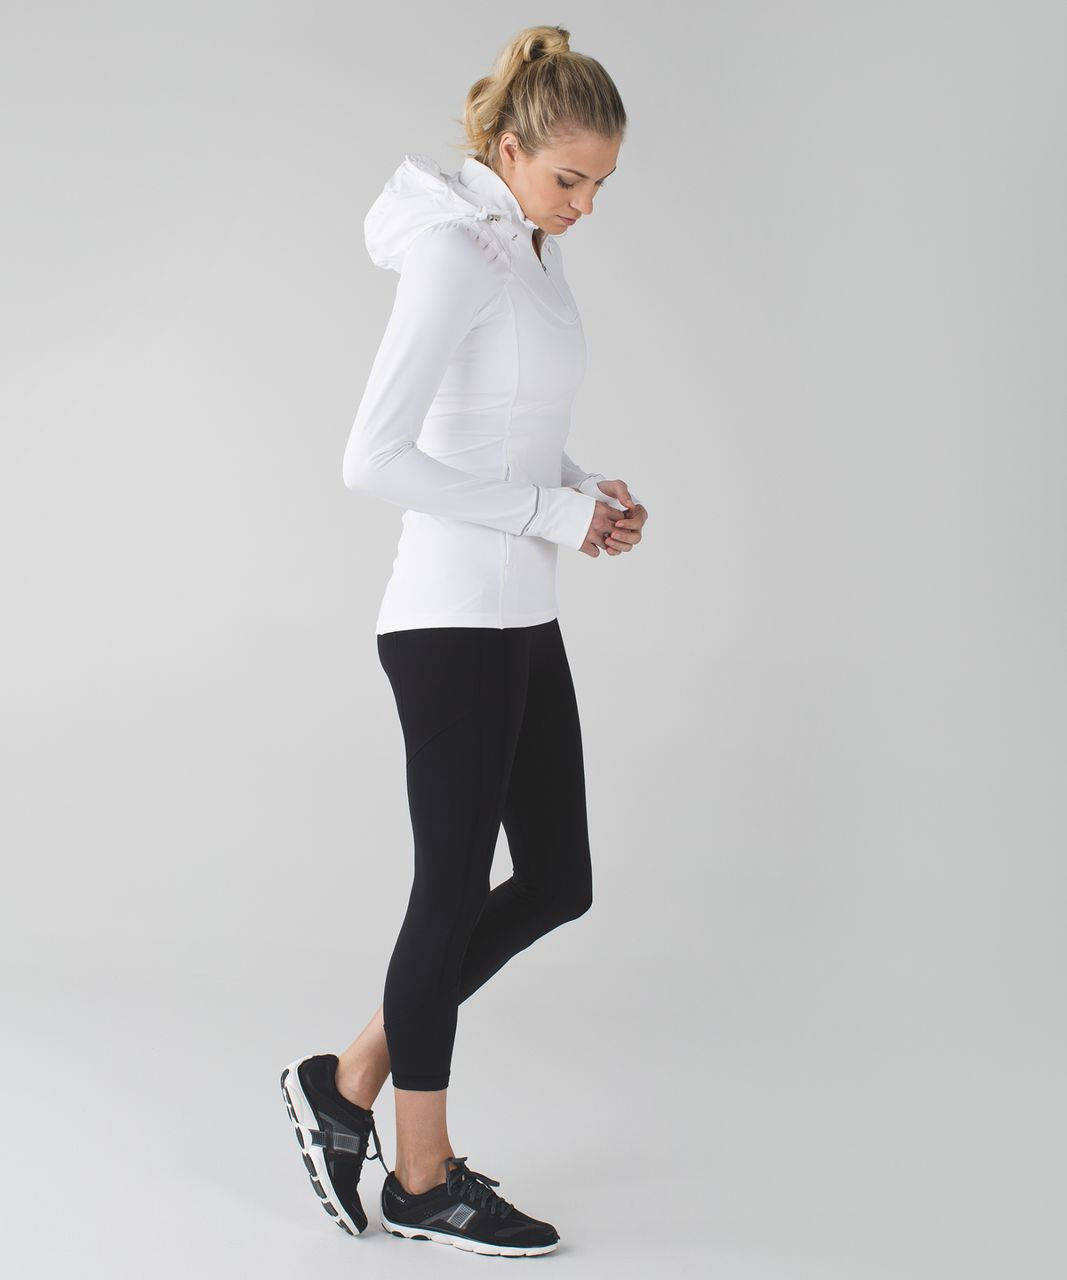 Lululemon Rain-On Train-On Pullover - White